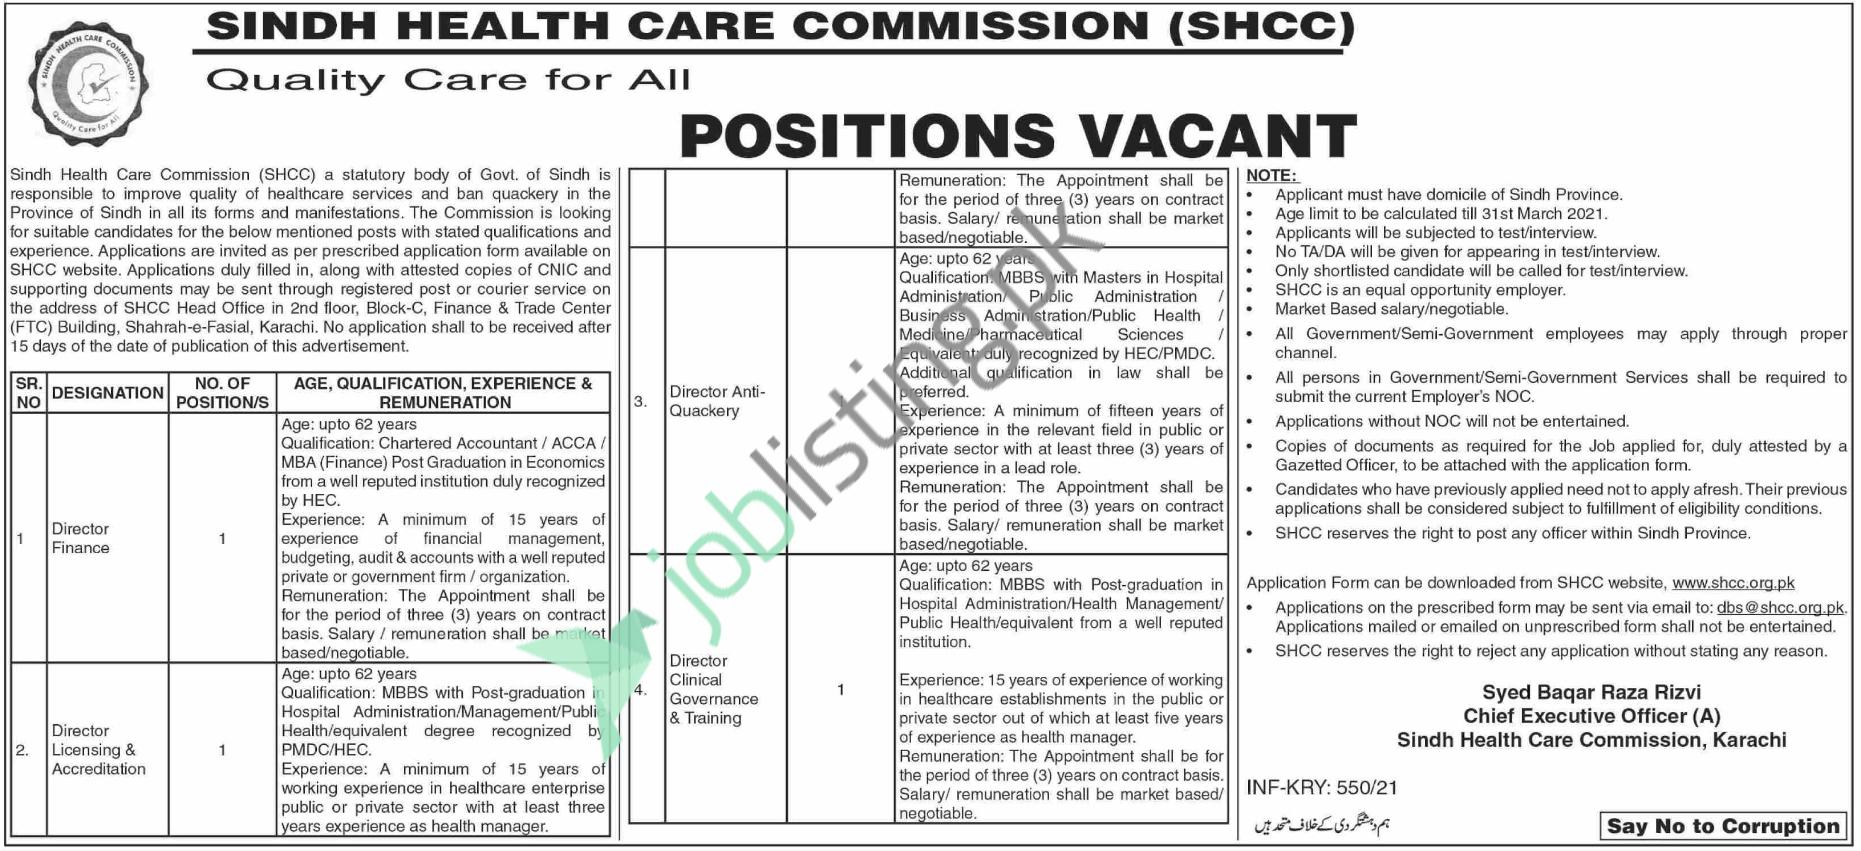 Sindh Healthcare Commission Jobs 2021 for Director Finance